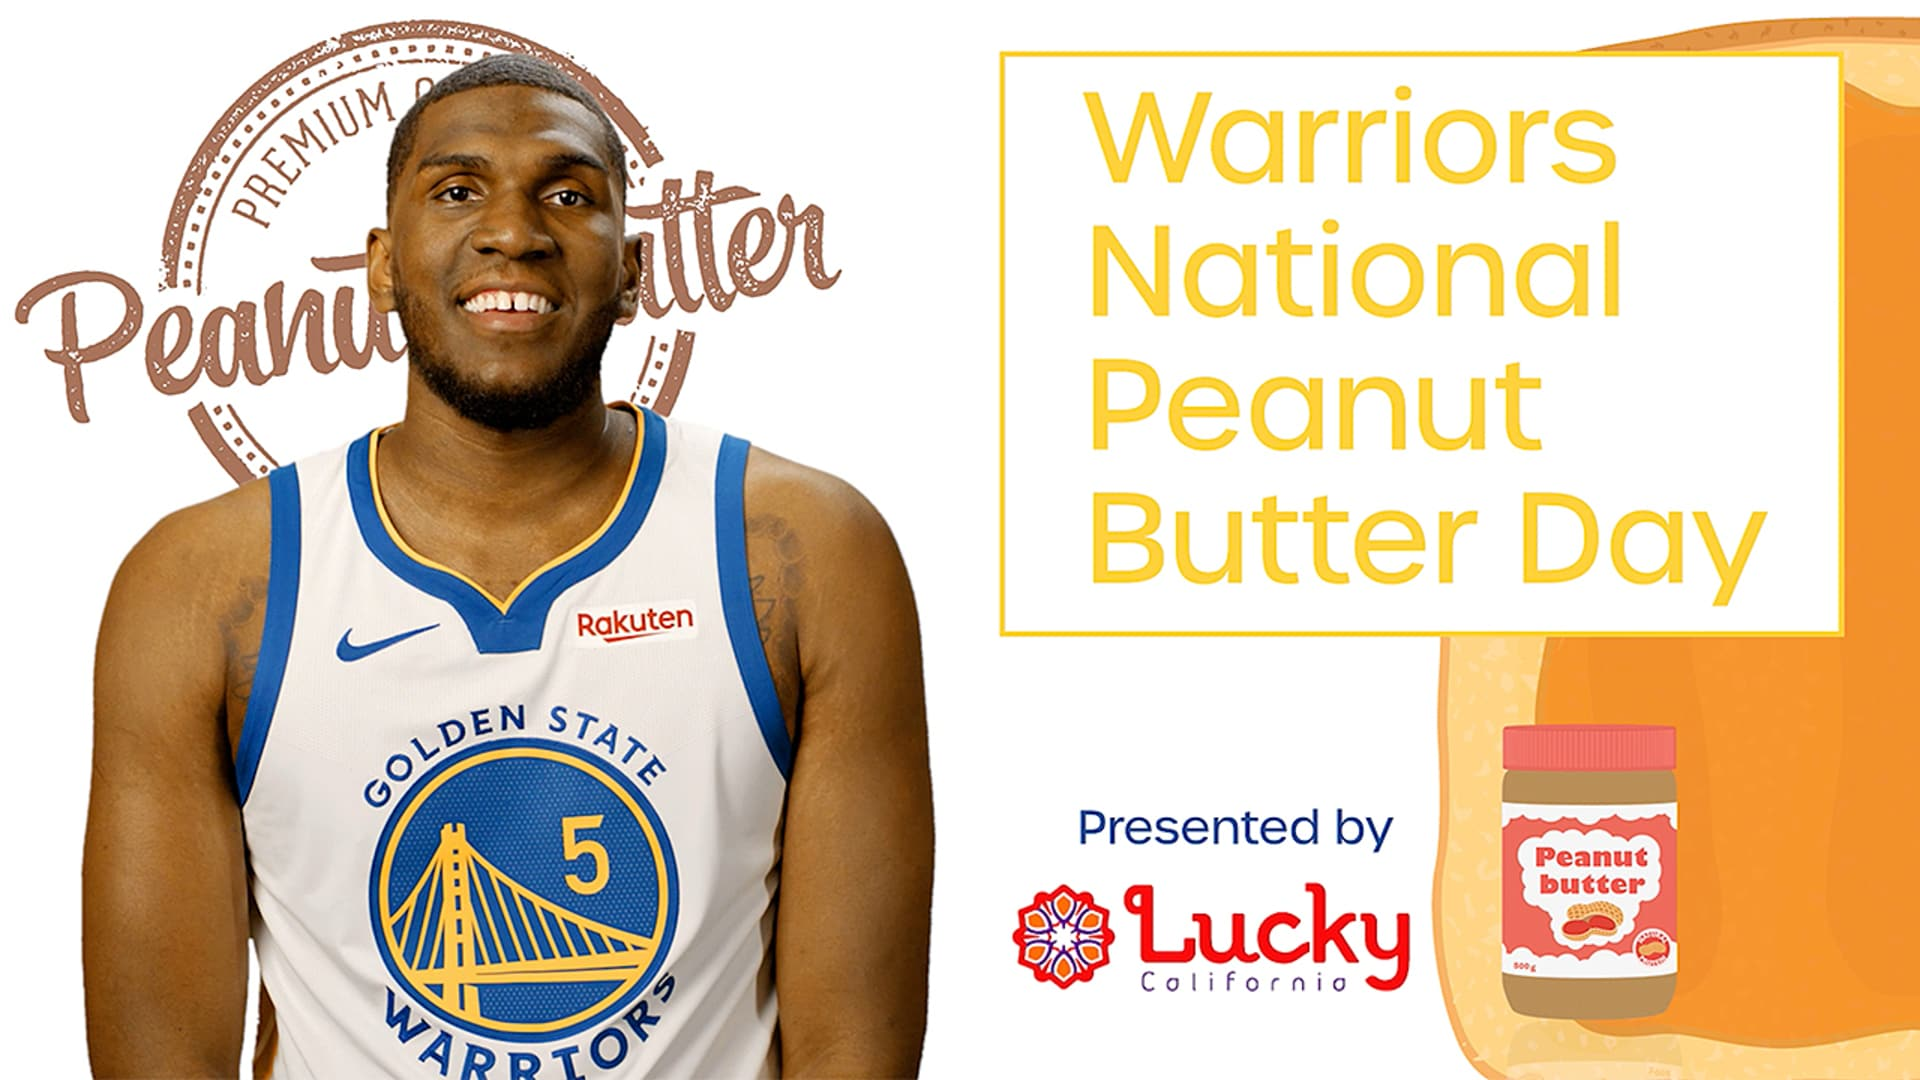 Warriors Chef Academy Recipe for National Peanut Butter Day